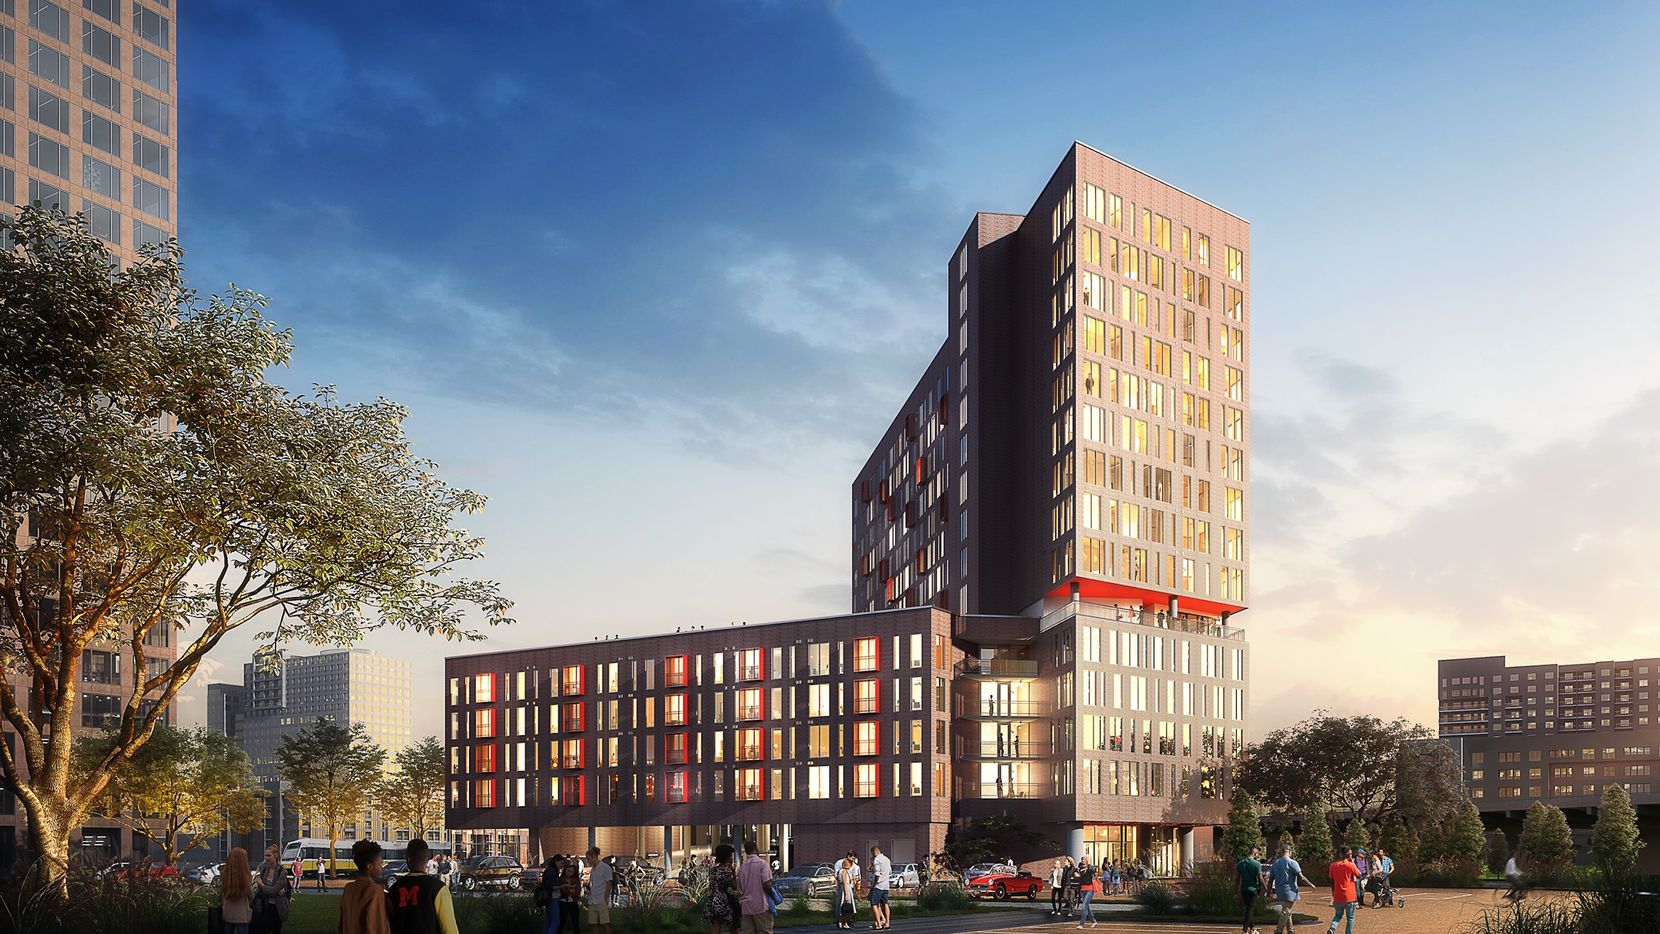 The Galbraith, a 15-story apartment high-rise, is being built on the eastern edge of downtown.